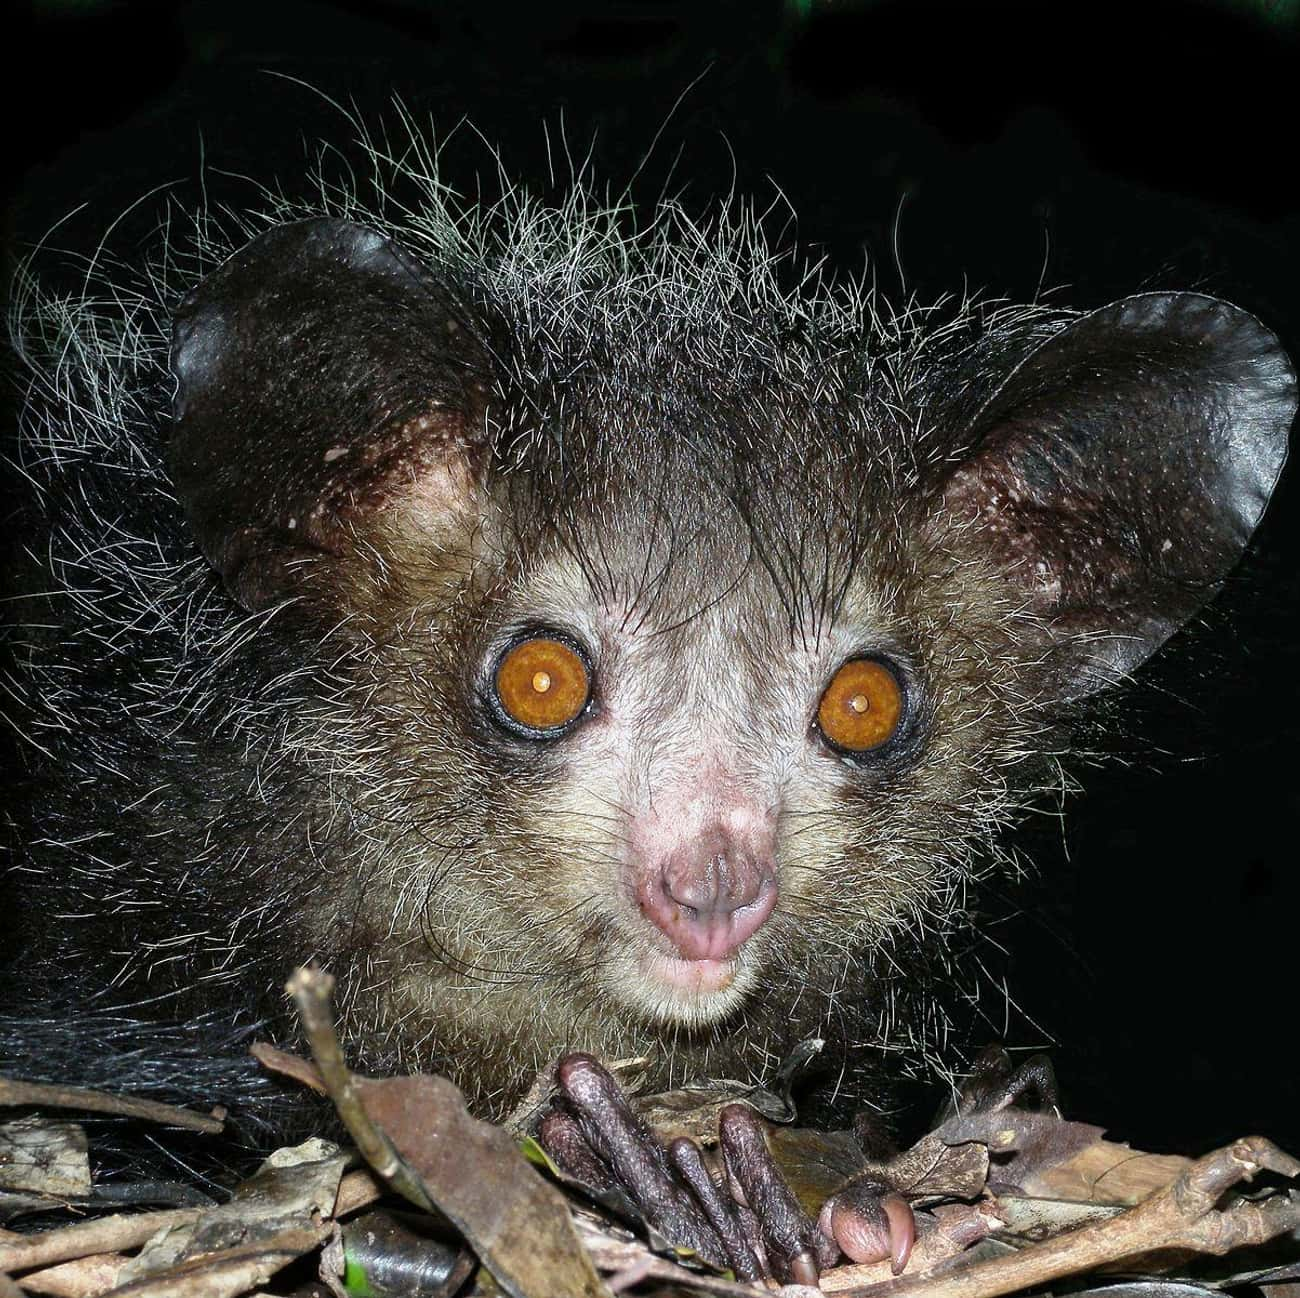 Natives View Them As An Omen O is listed (or ranked) 1 on the list 11 Facts Most People Don't Know About Aye-Ayes, The Creepiest Of All Primates